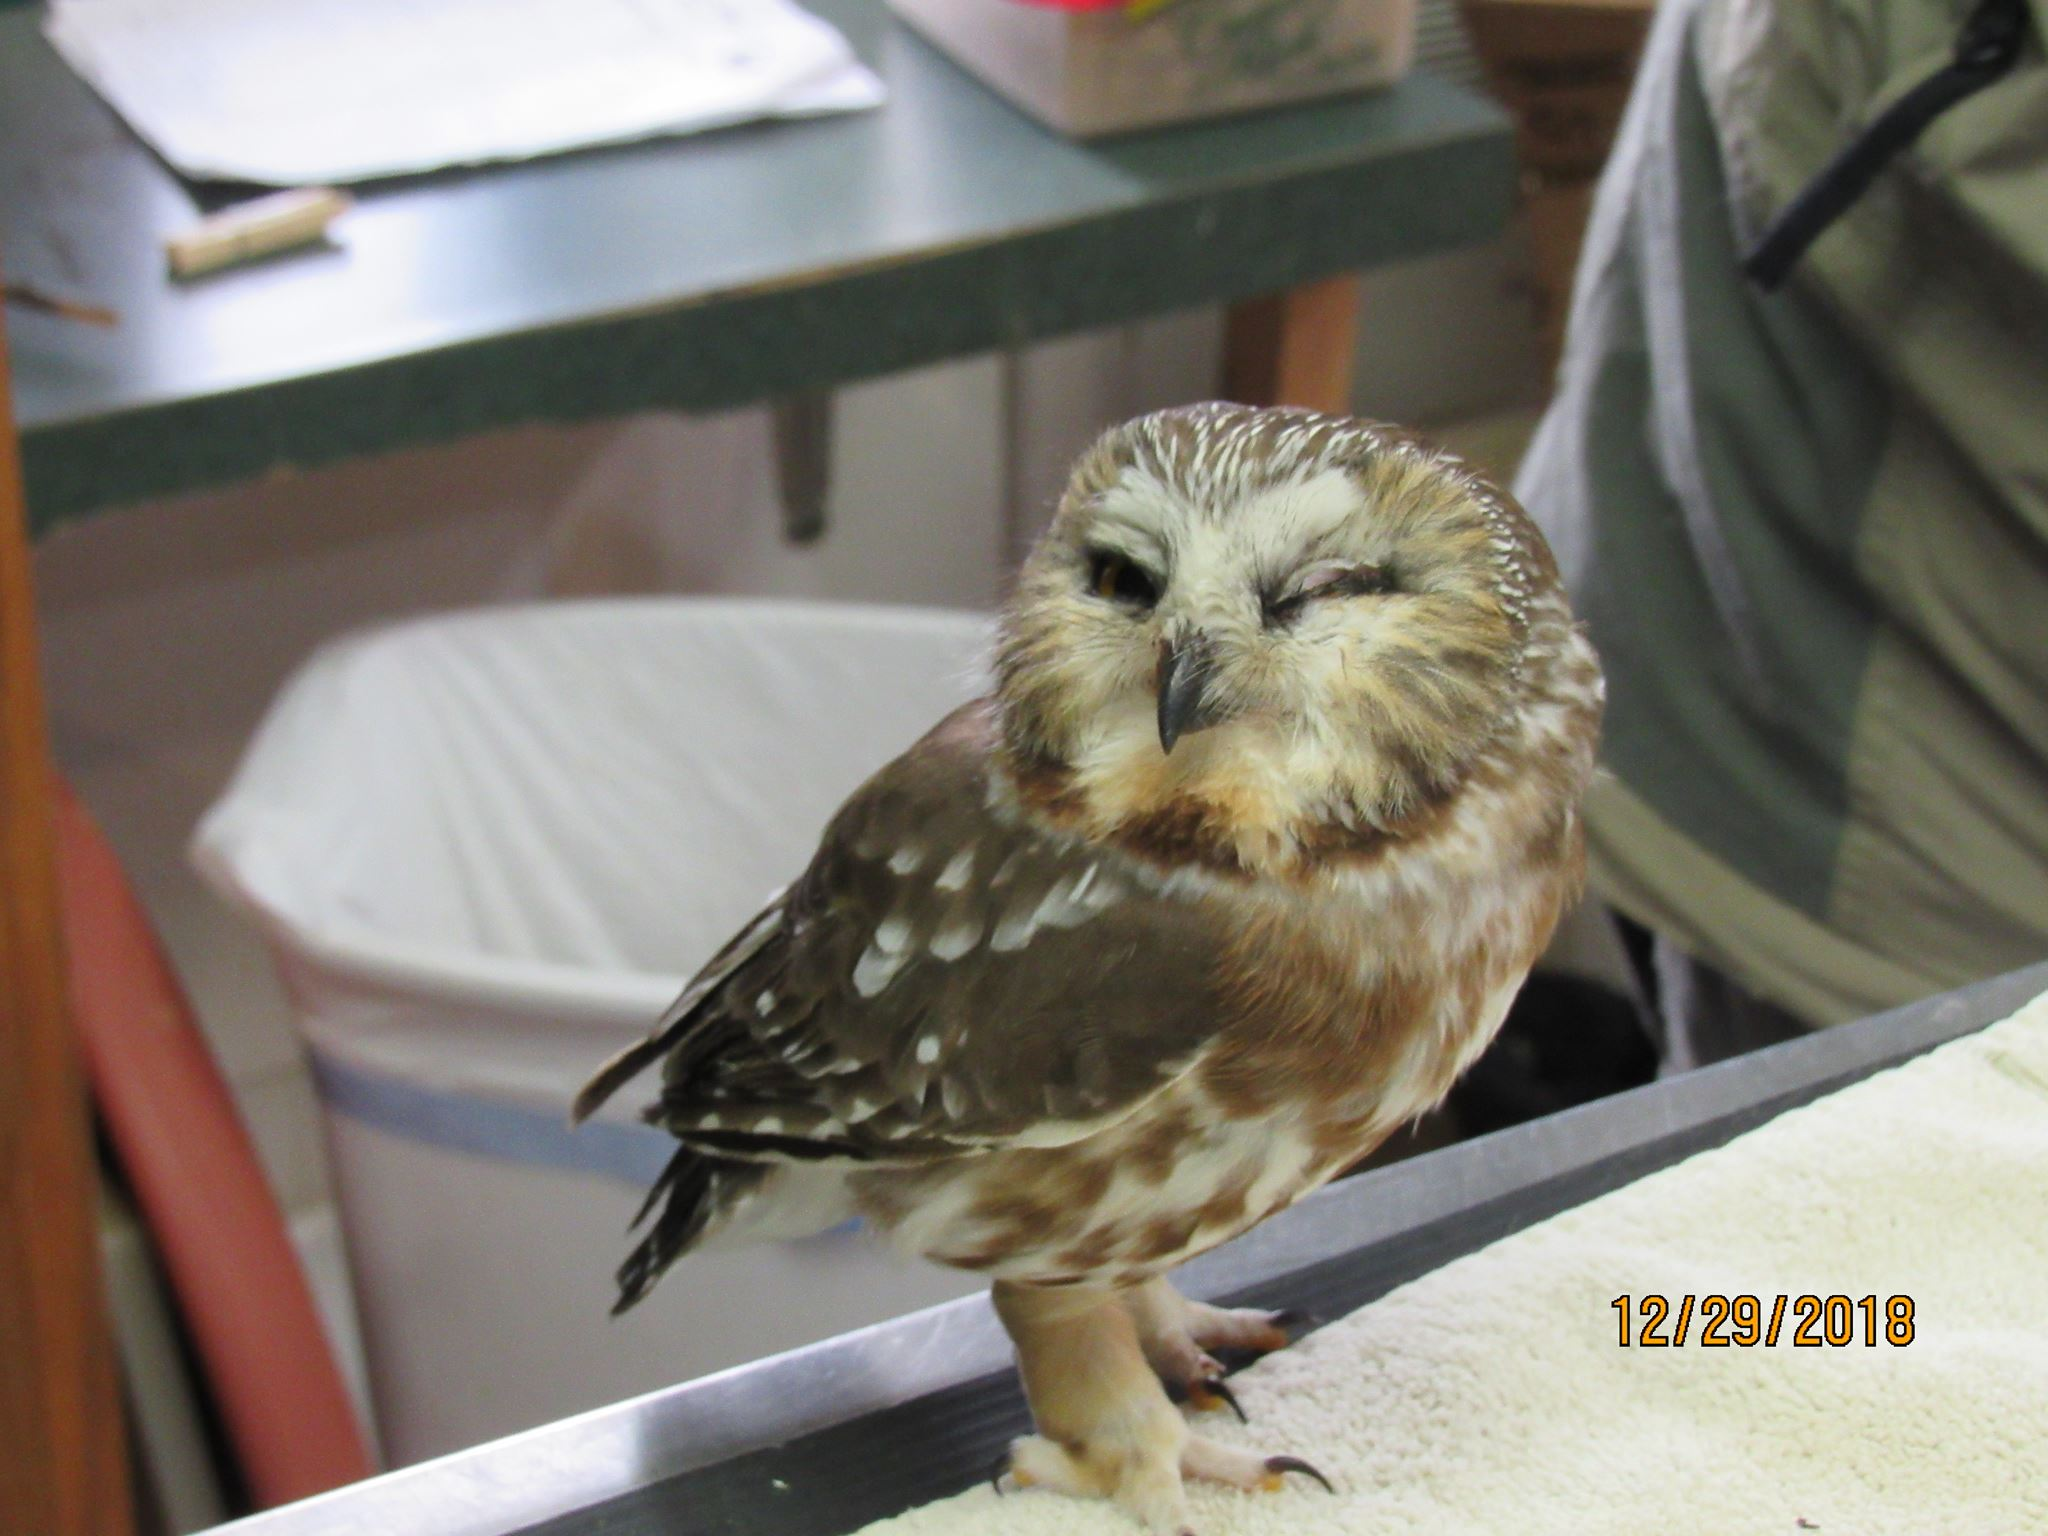 The female Saw-whet has an eye injury but is improving.